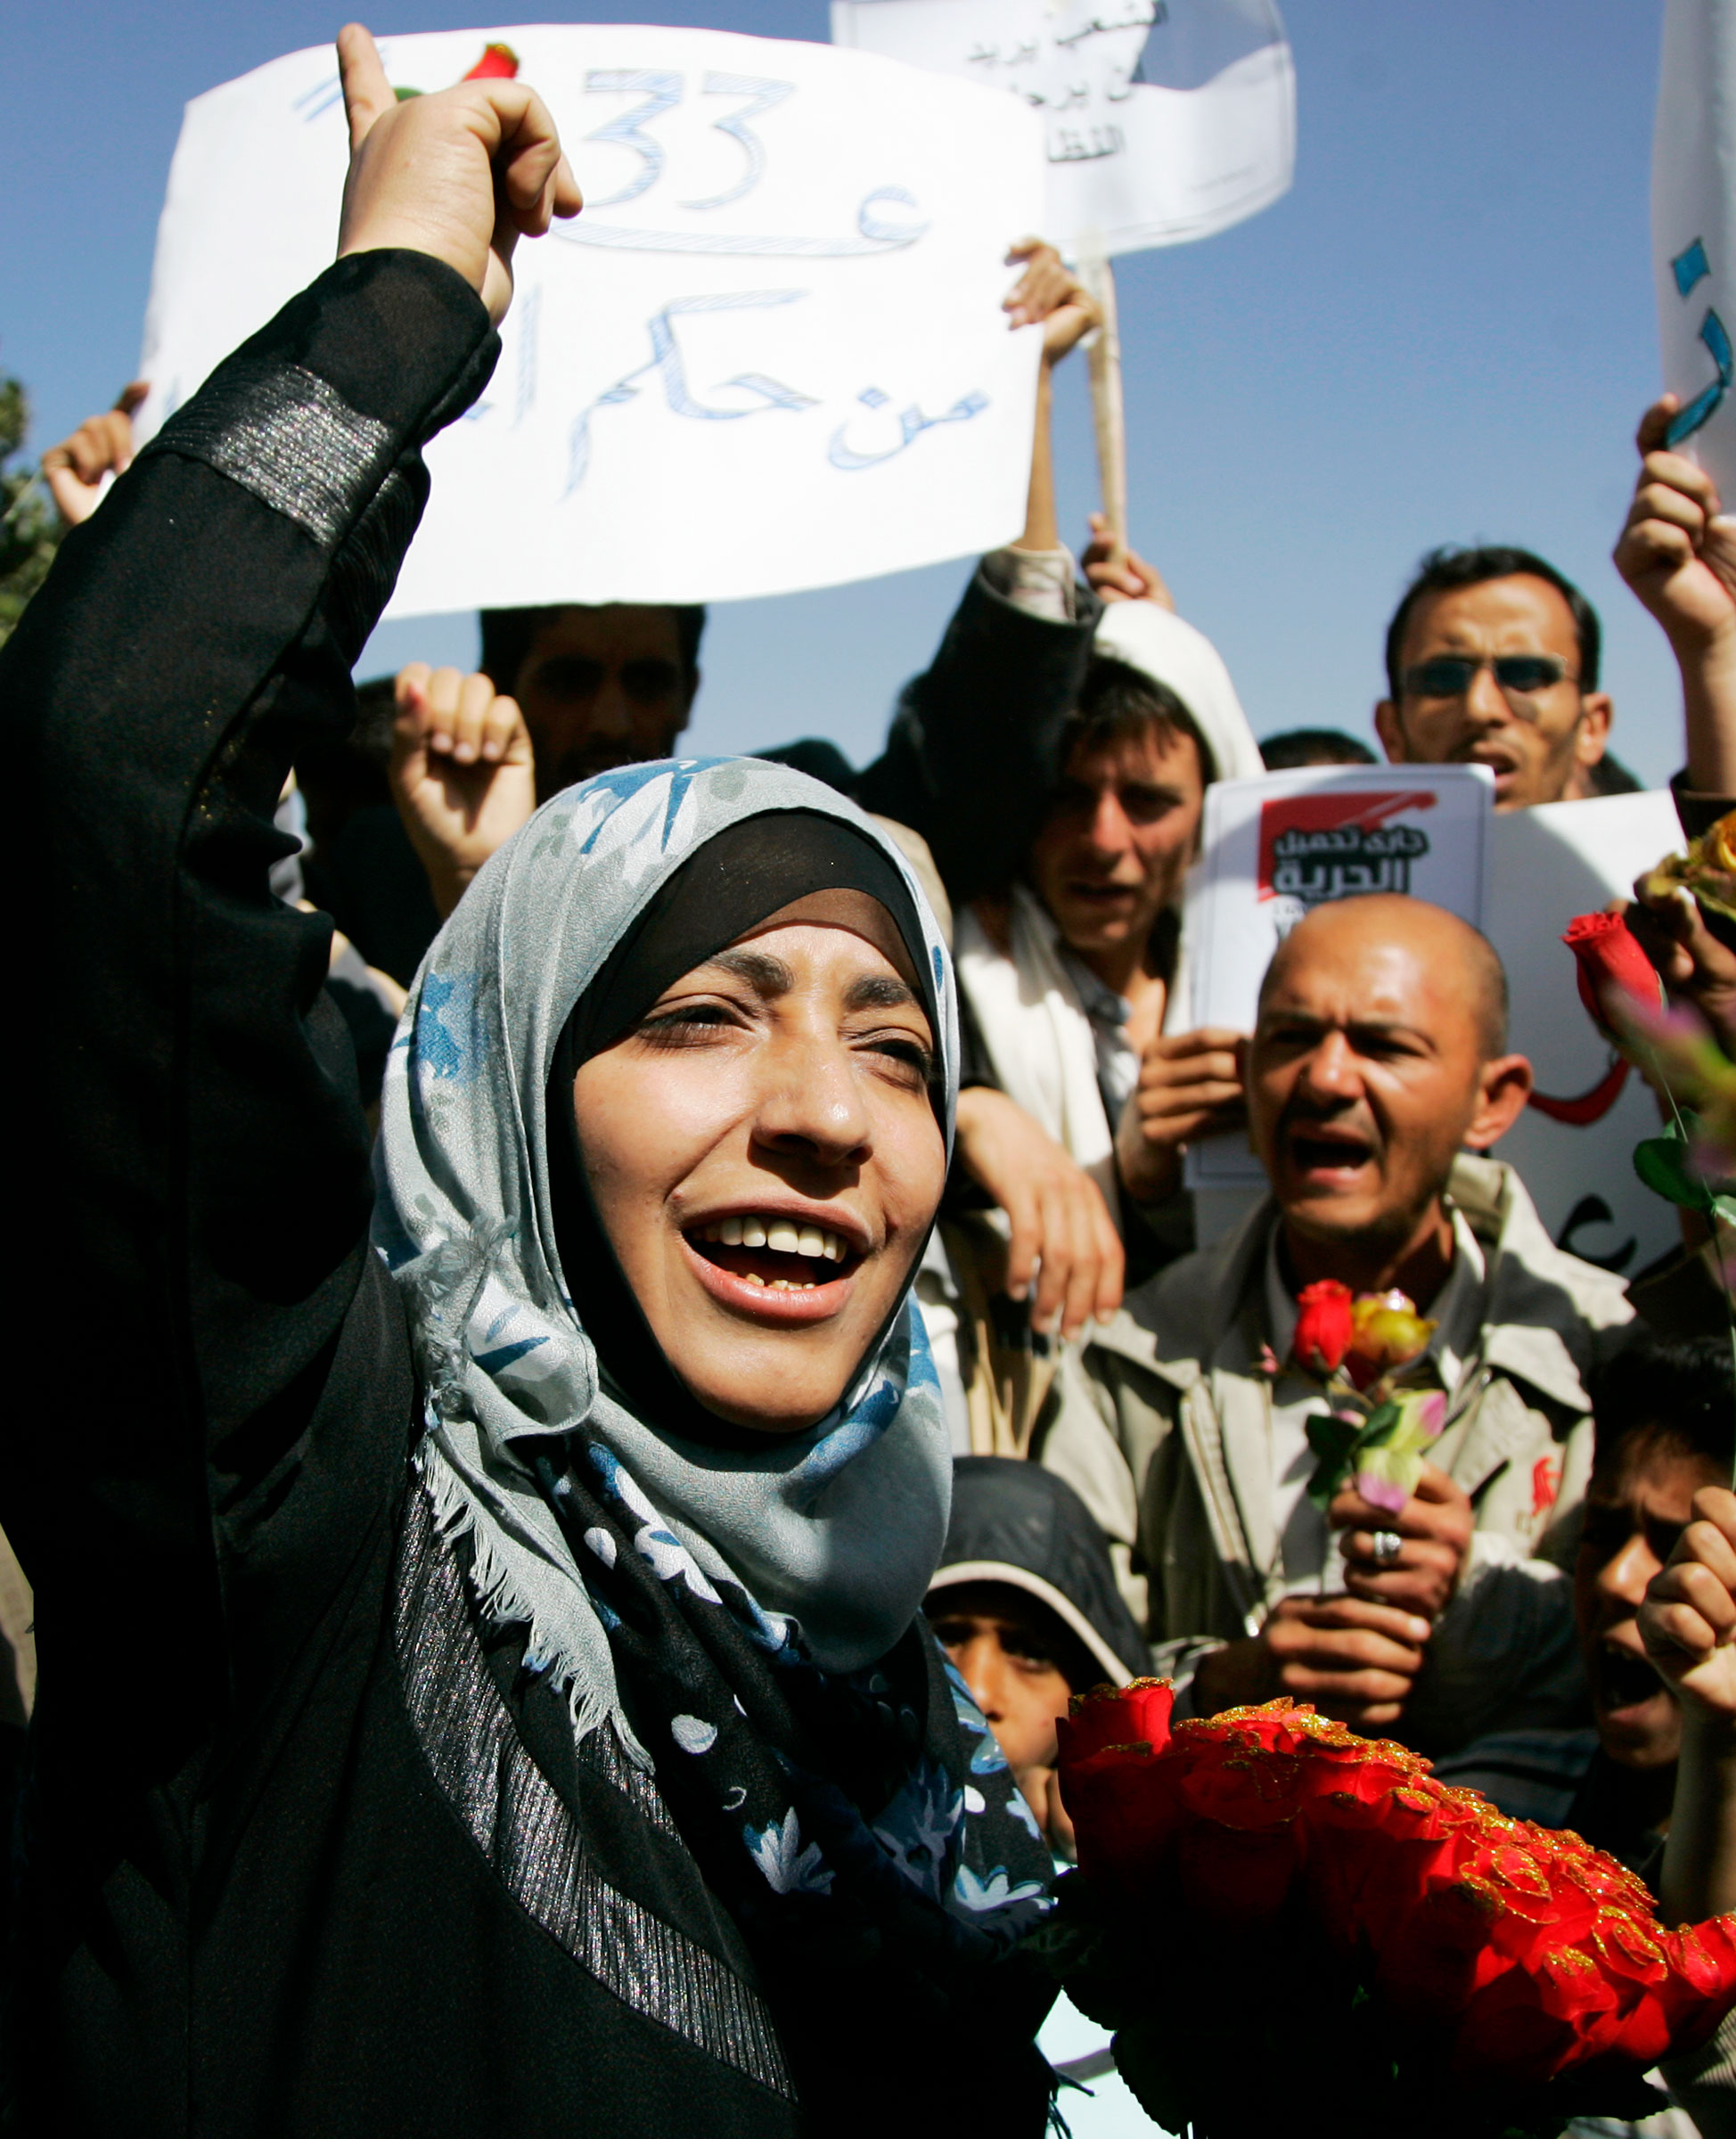 Tawakkol Karman, the chairwoman of Women Journalists without Chains, shouts slogans during an anti-government protest in Sanaa February 10, 2011.